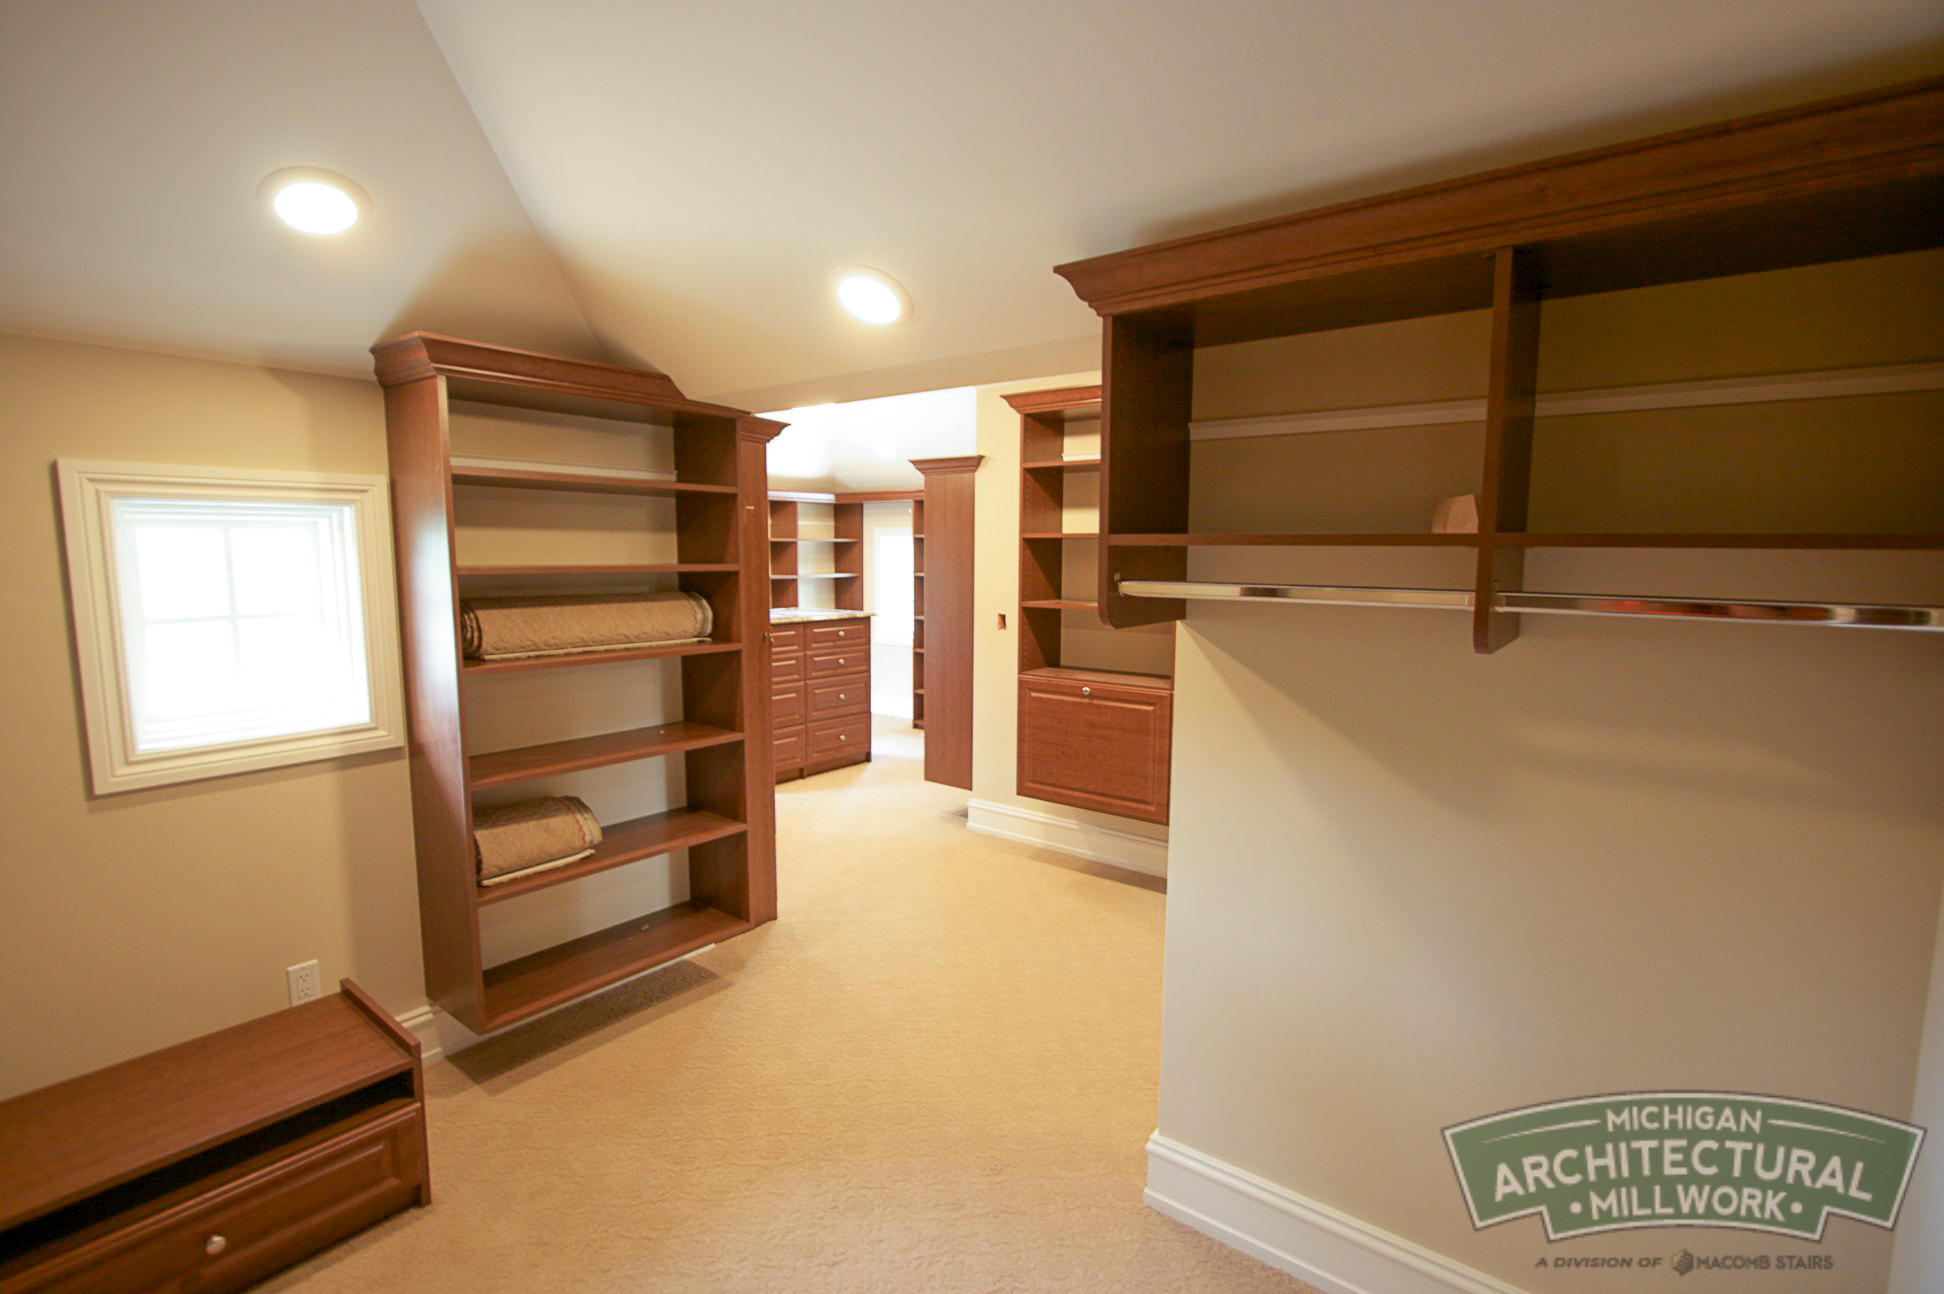 Michigan Architectural Millwork- Moulding and Millwork Photo-98.jpg